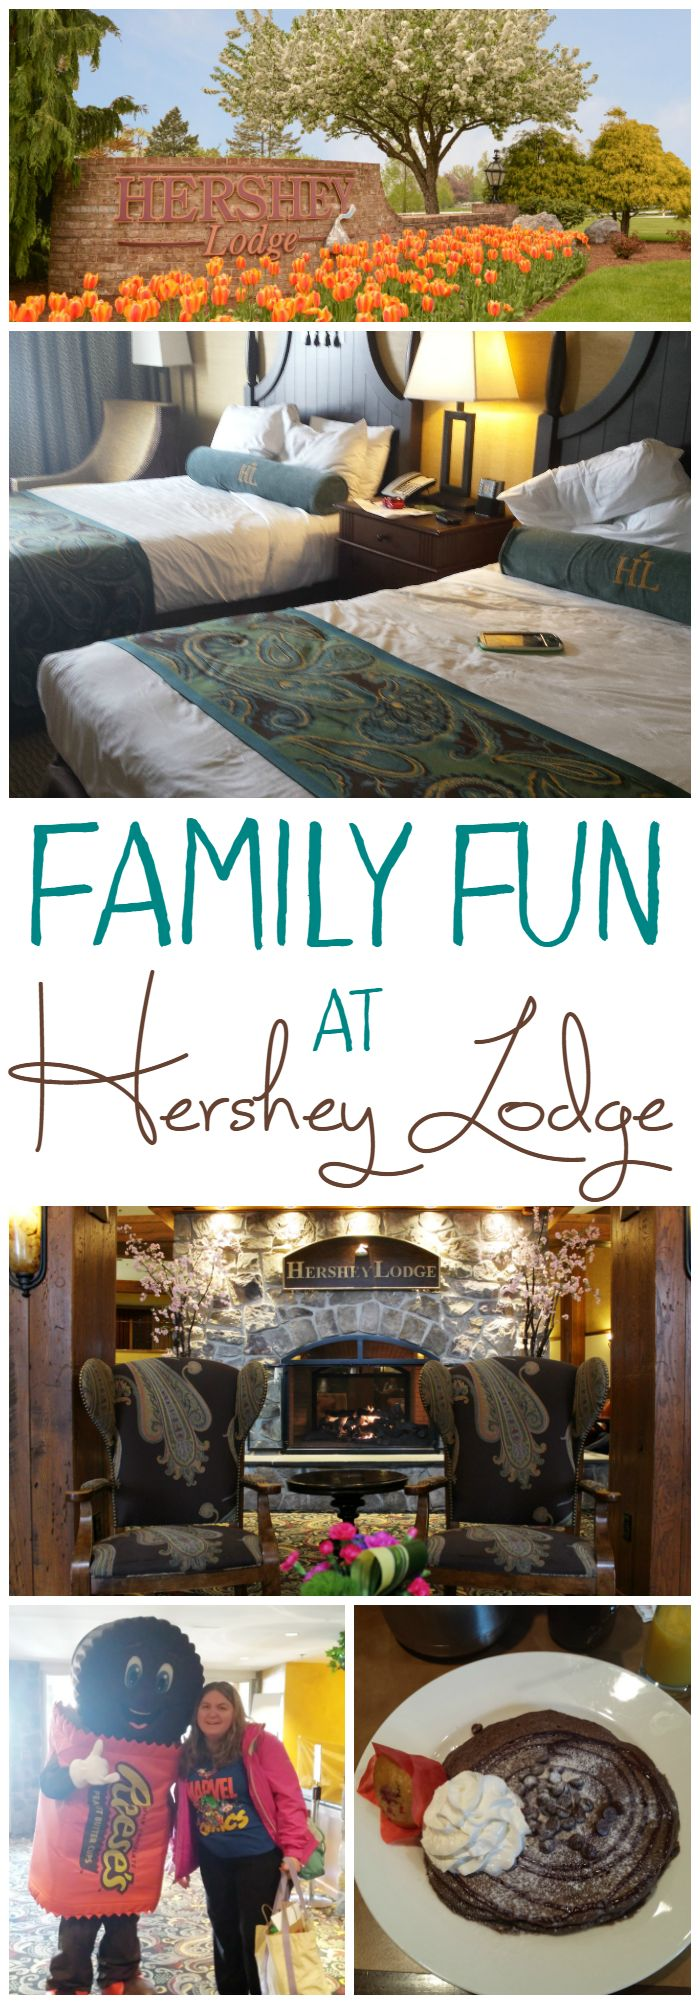 Hershey Lodge in Hershey, PA is truly a resort for the family! From activities, character appearances, and several dining options, they have you covered!